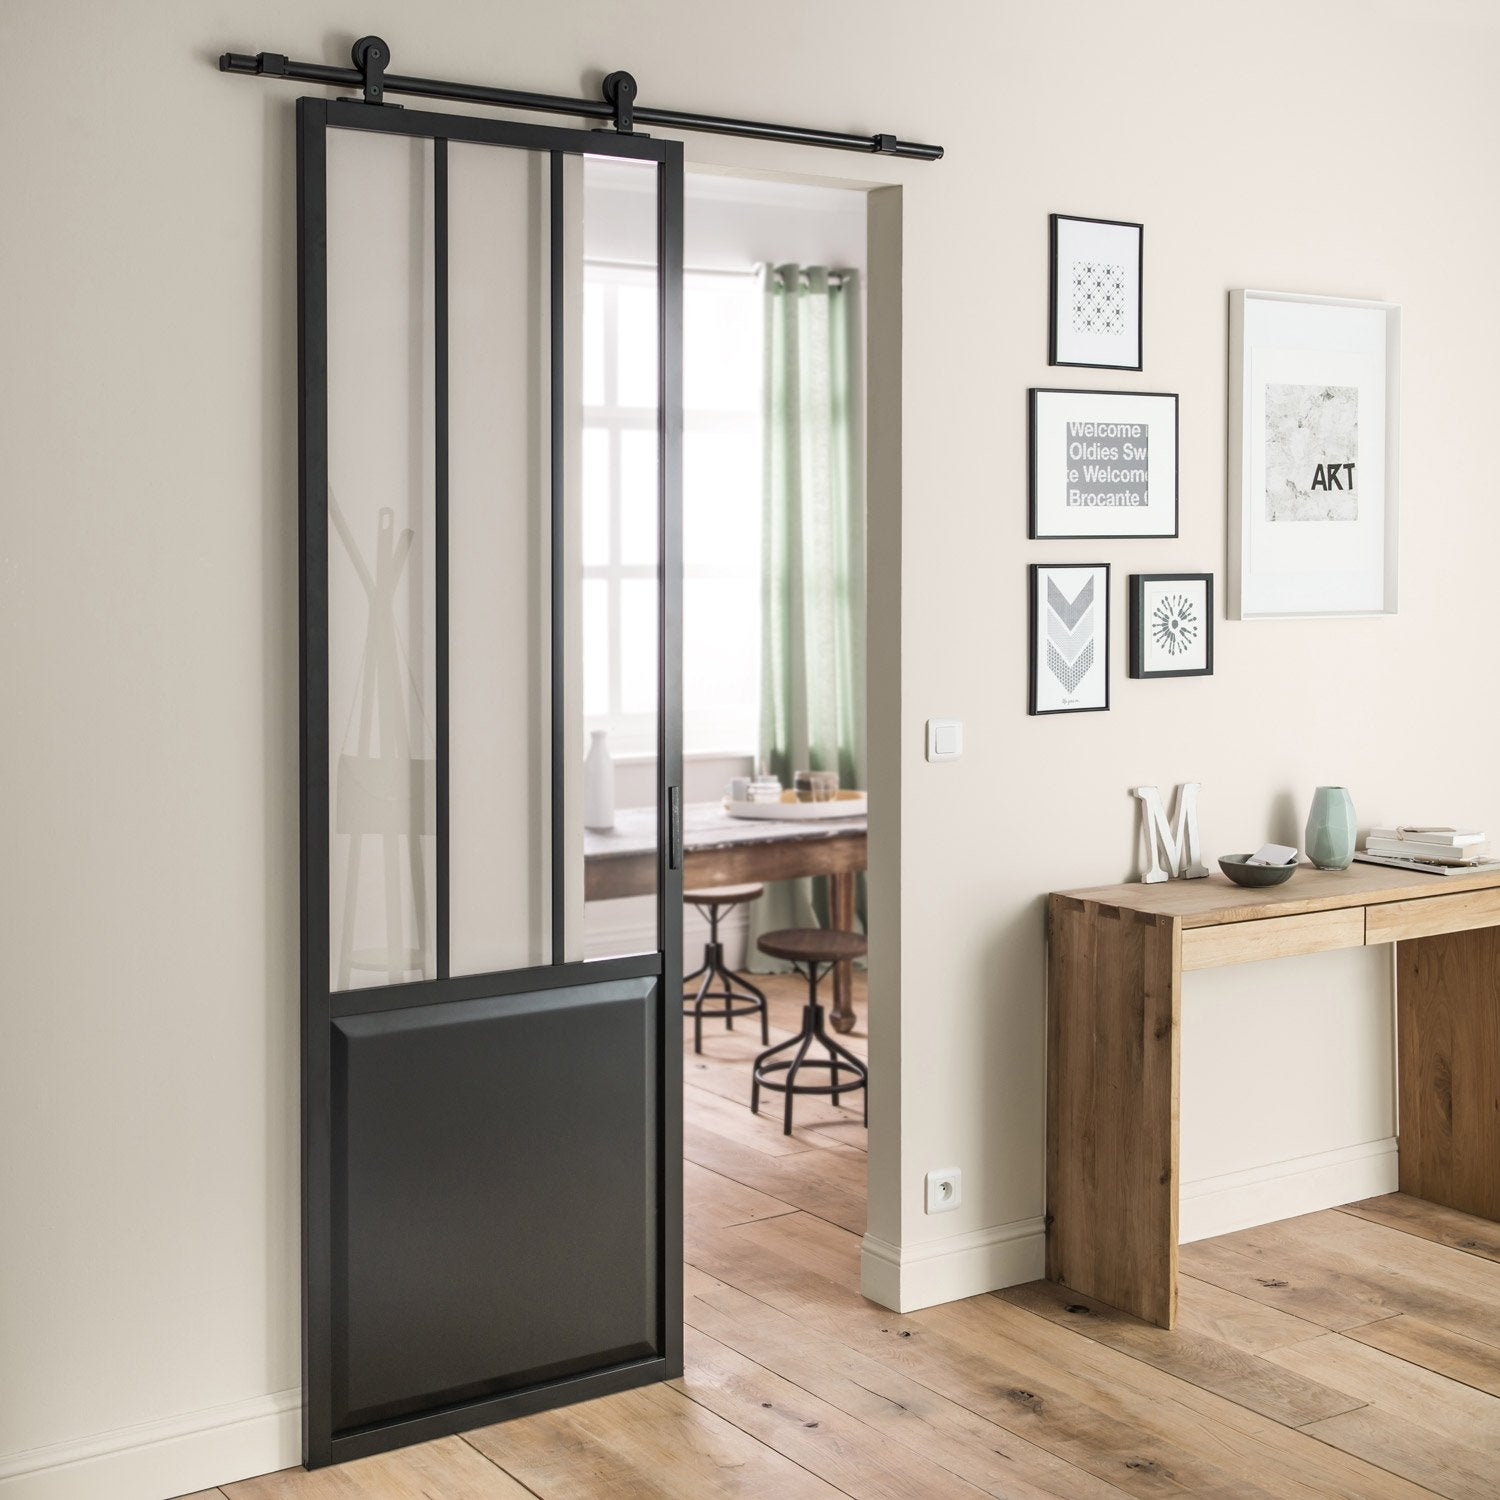 Ensemble porte coulissante atelier mdf rev tu avec le rail for Rail portes coulissantes